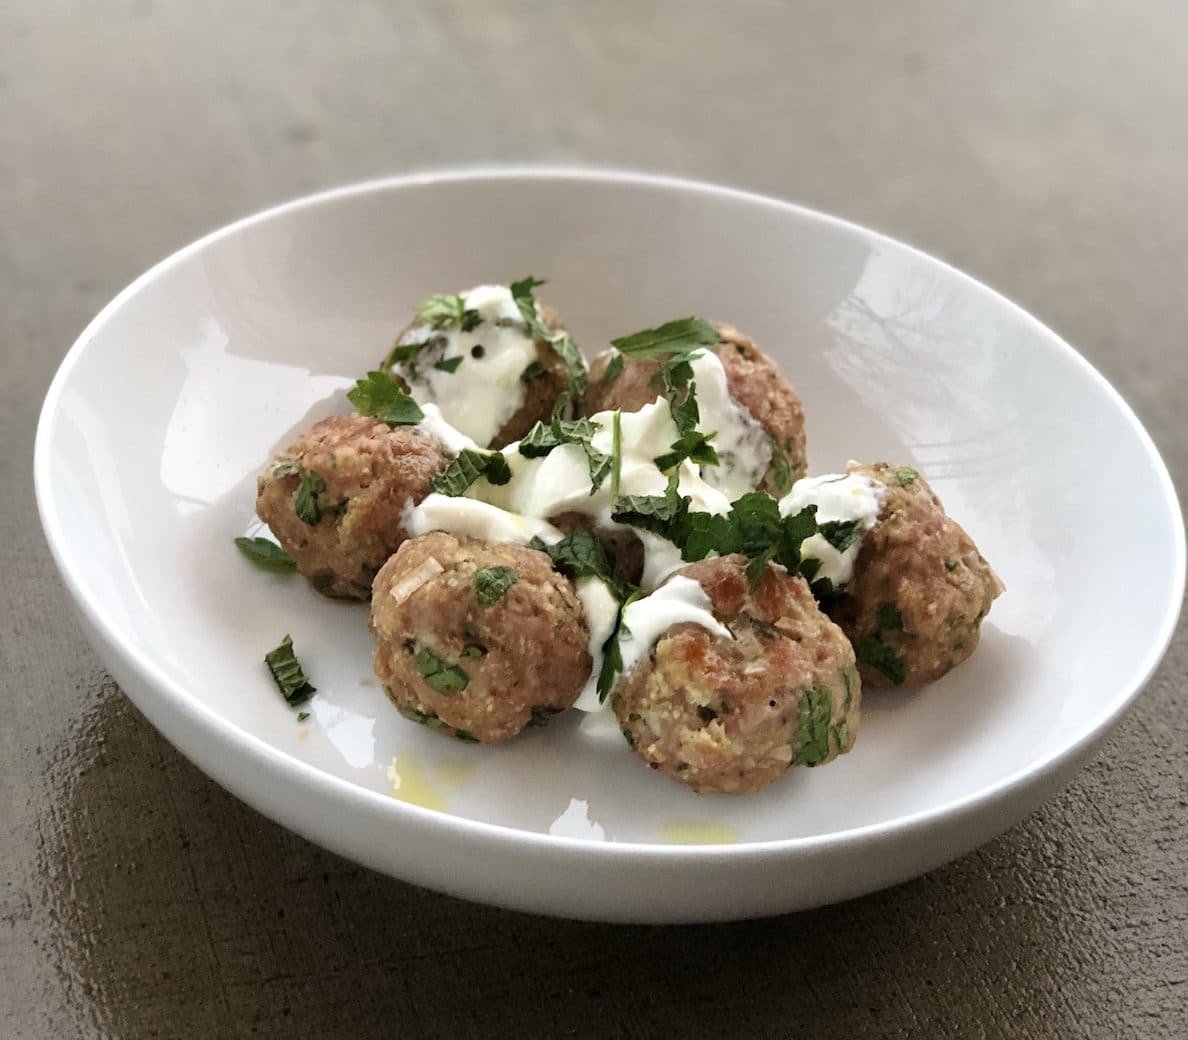 Try this mediterranean lamb meatball recipe with ground lamb from Green Dirt Farm.